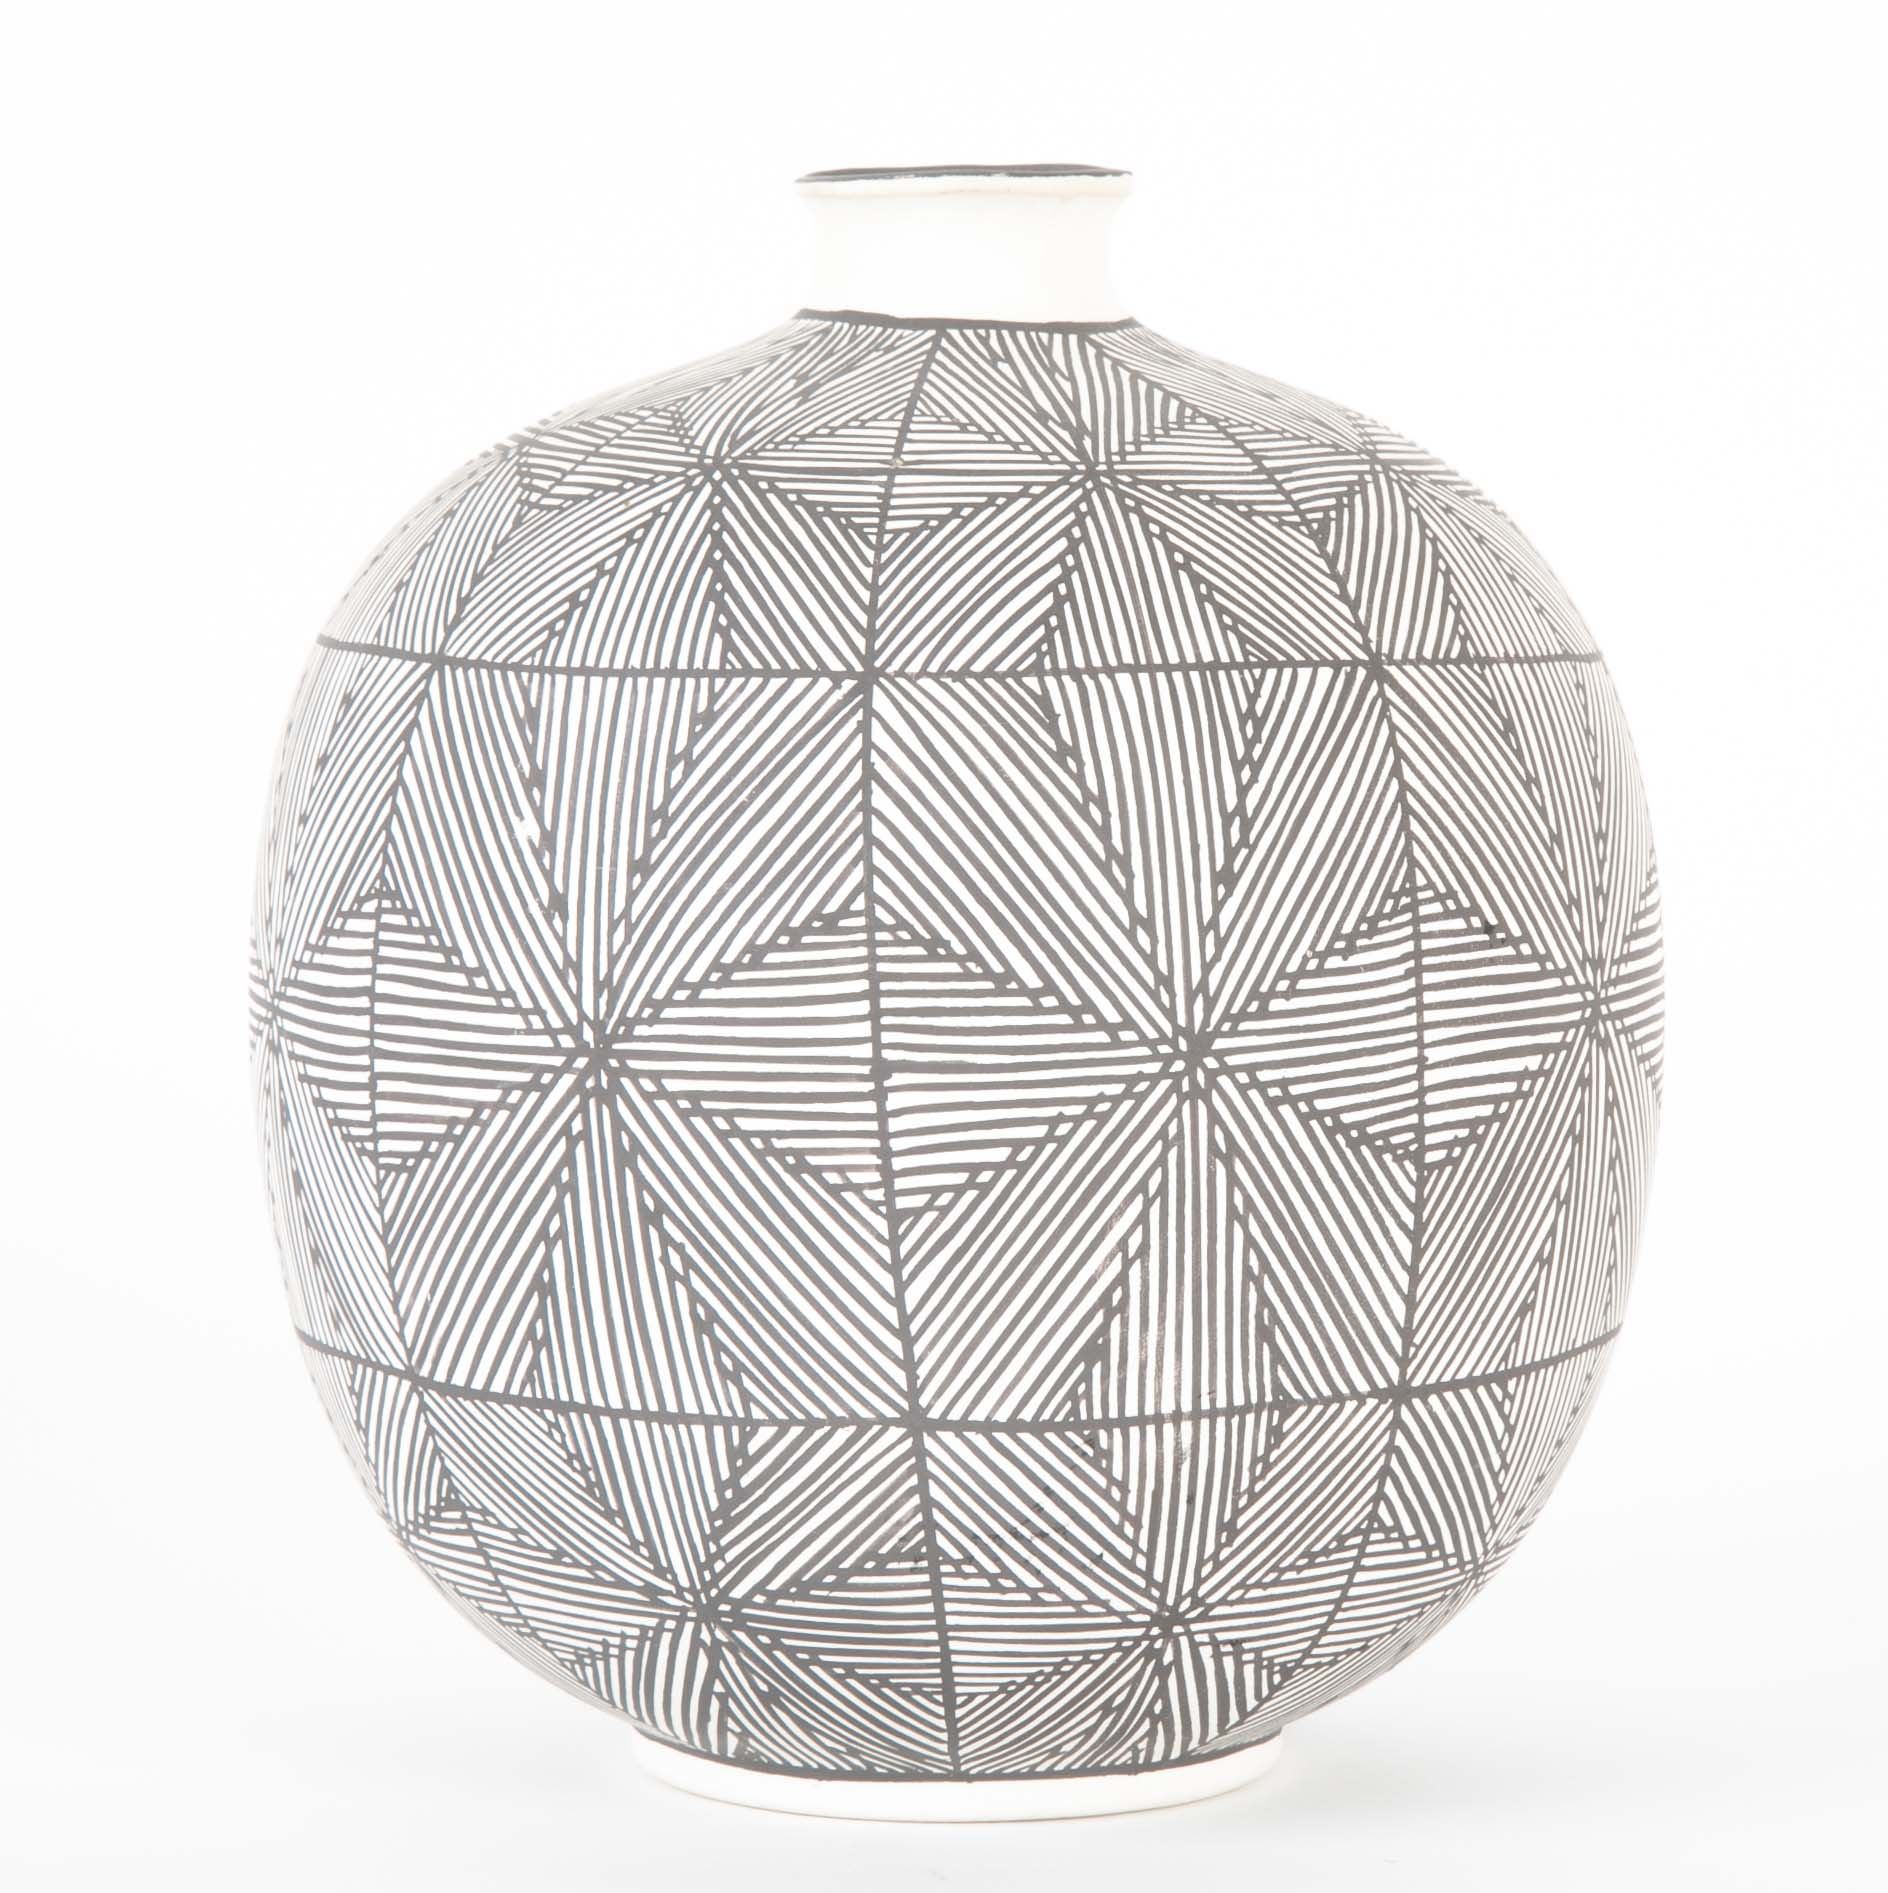 Round Acoma Vessel with Fine Line Black Web on White Design